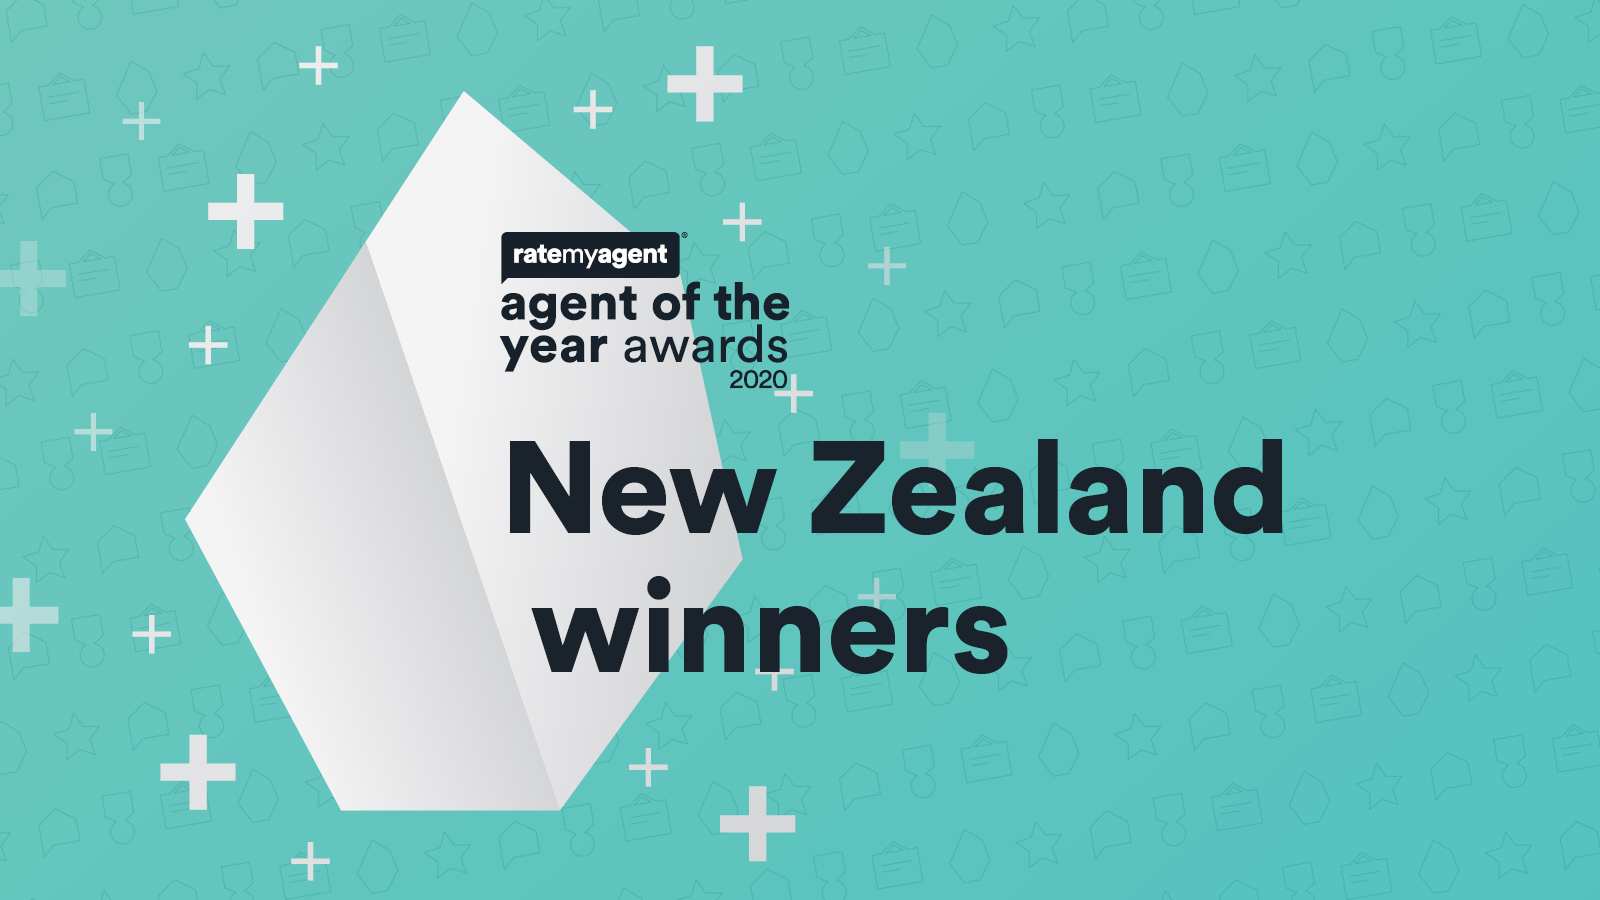 2020 Agent of the Year Awards – New Zealand Winners